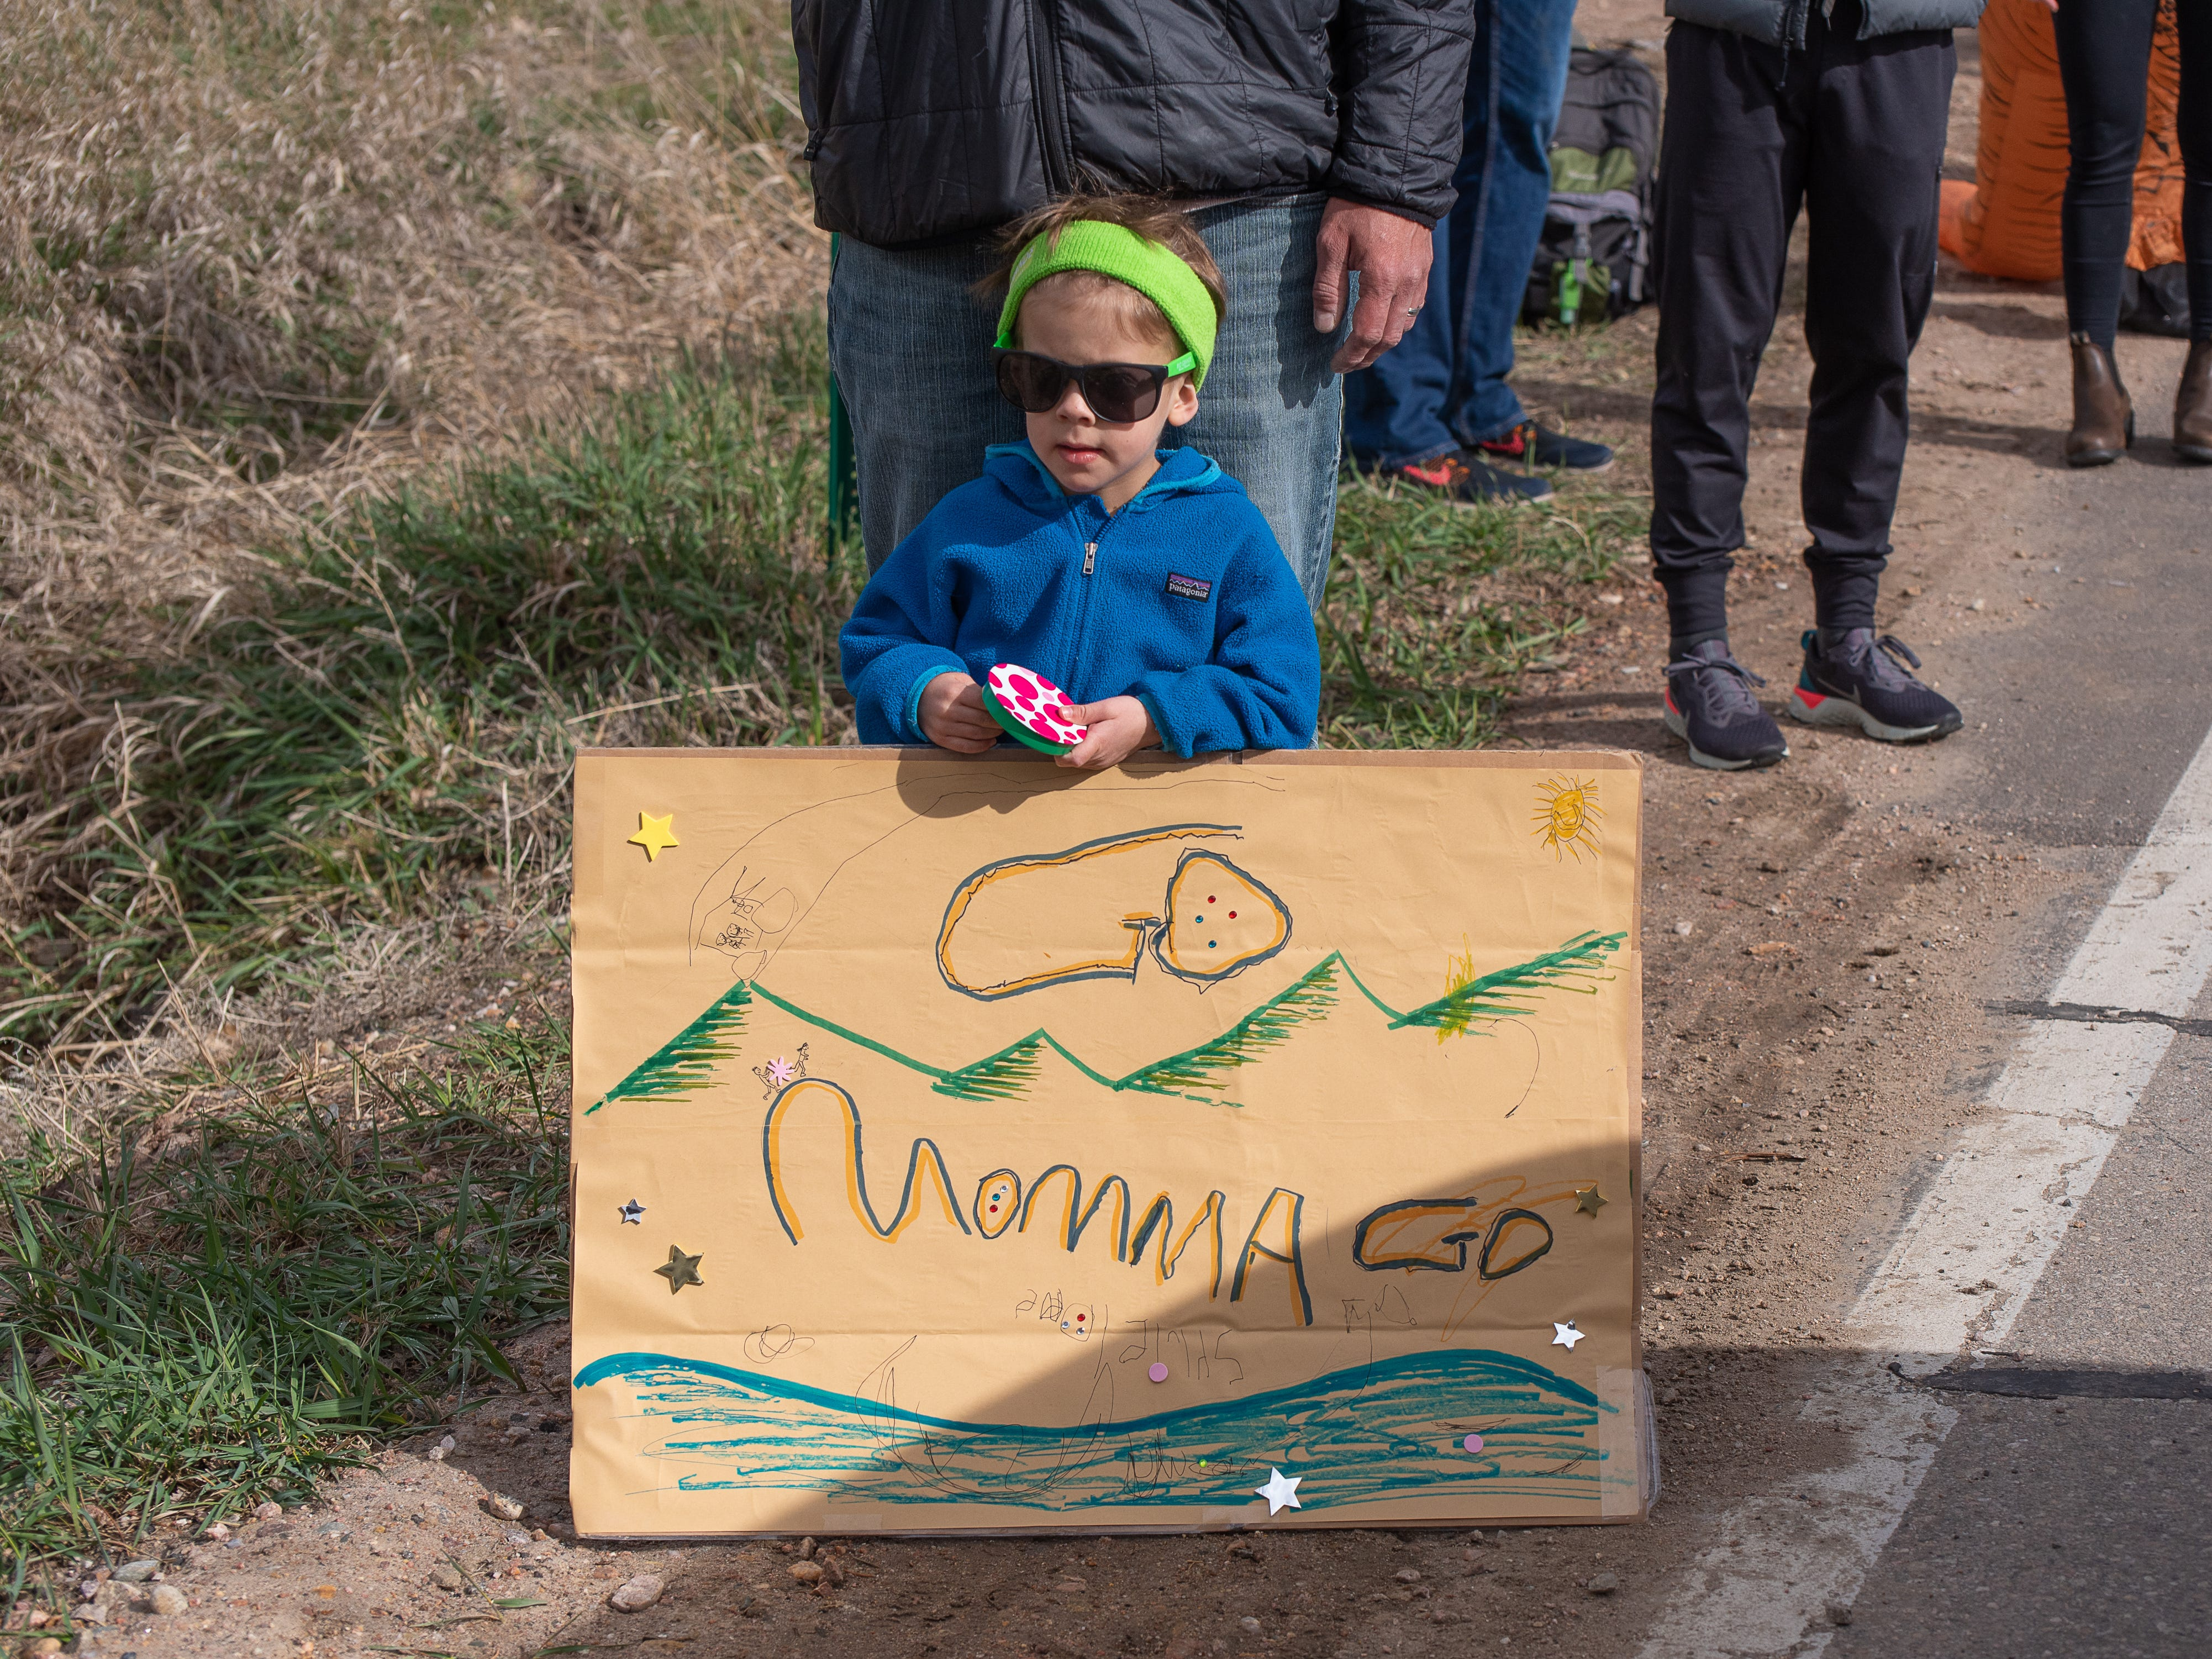 A young spectator holds a sign of encouragement near Bellvue during the Horsetooth Half Marathon on Sunday, April 14, 2019, in Fort Collins, Colo.